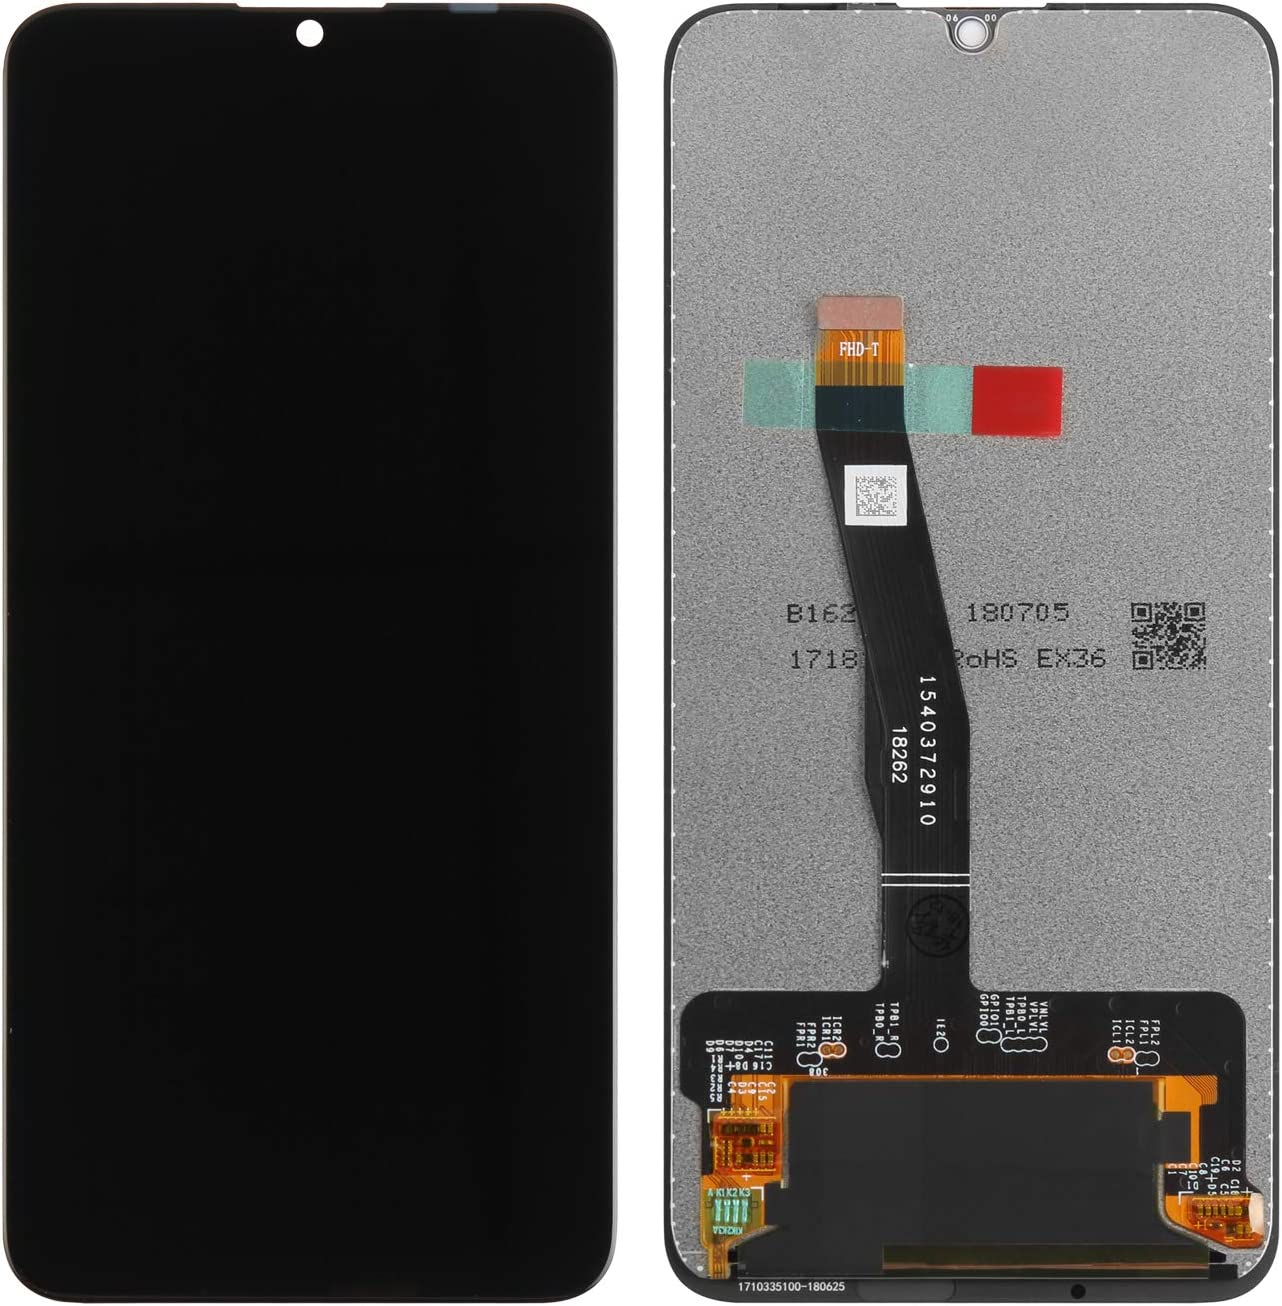 Display incl Tools MMOBIEL Front Glass Repair kit Compatible with Huawei P Smart 2019 Honor 10 Lite 2018 6.21 Inch Black